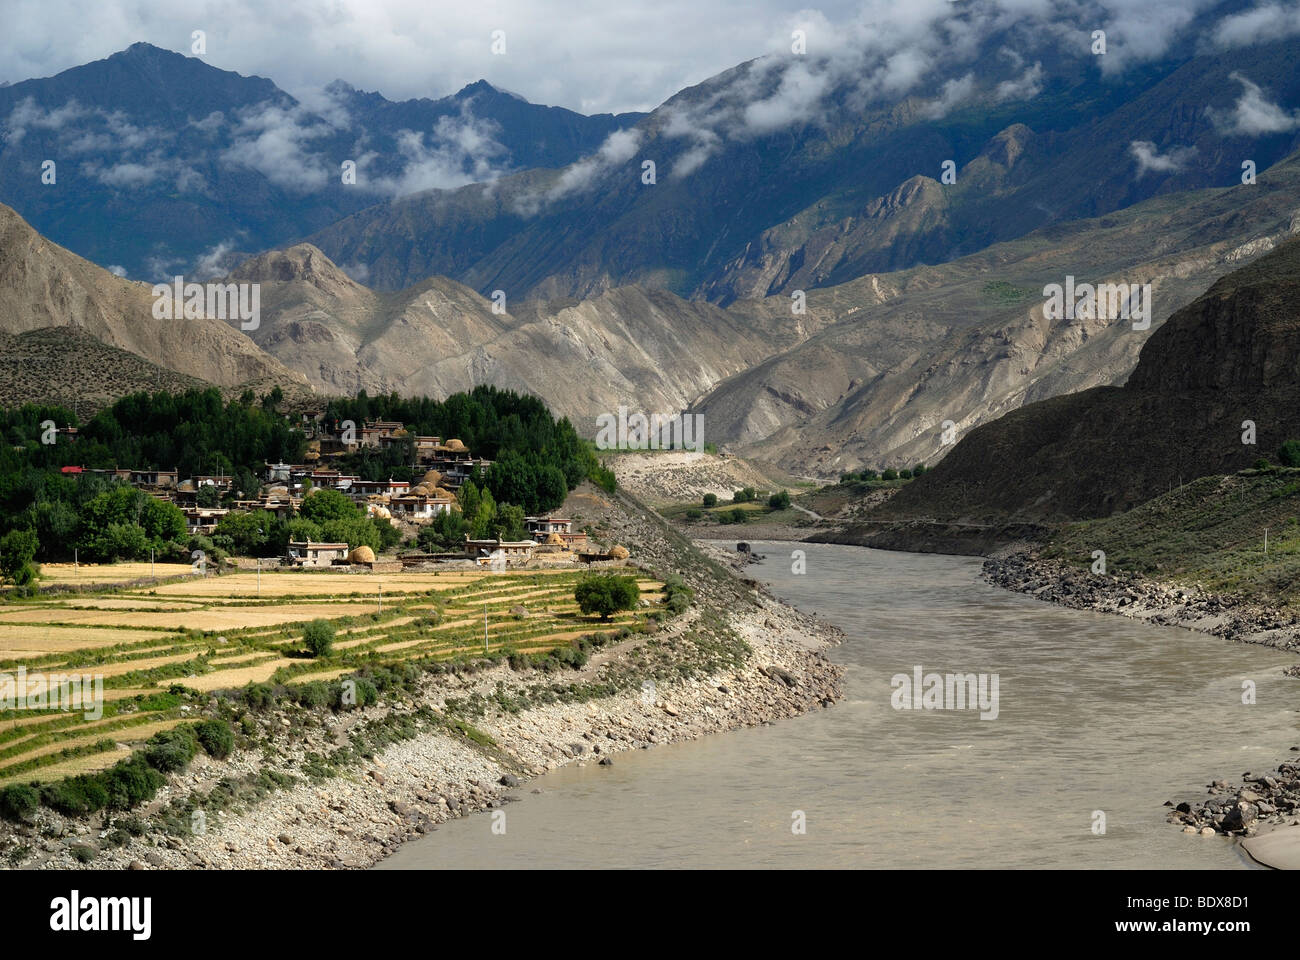 Tibetan village in front of grainfields in the valley of the Yarlung Tsanpo, Brahmaputra, Tibet, China, Asia - Stock Image